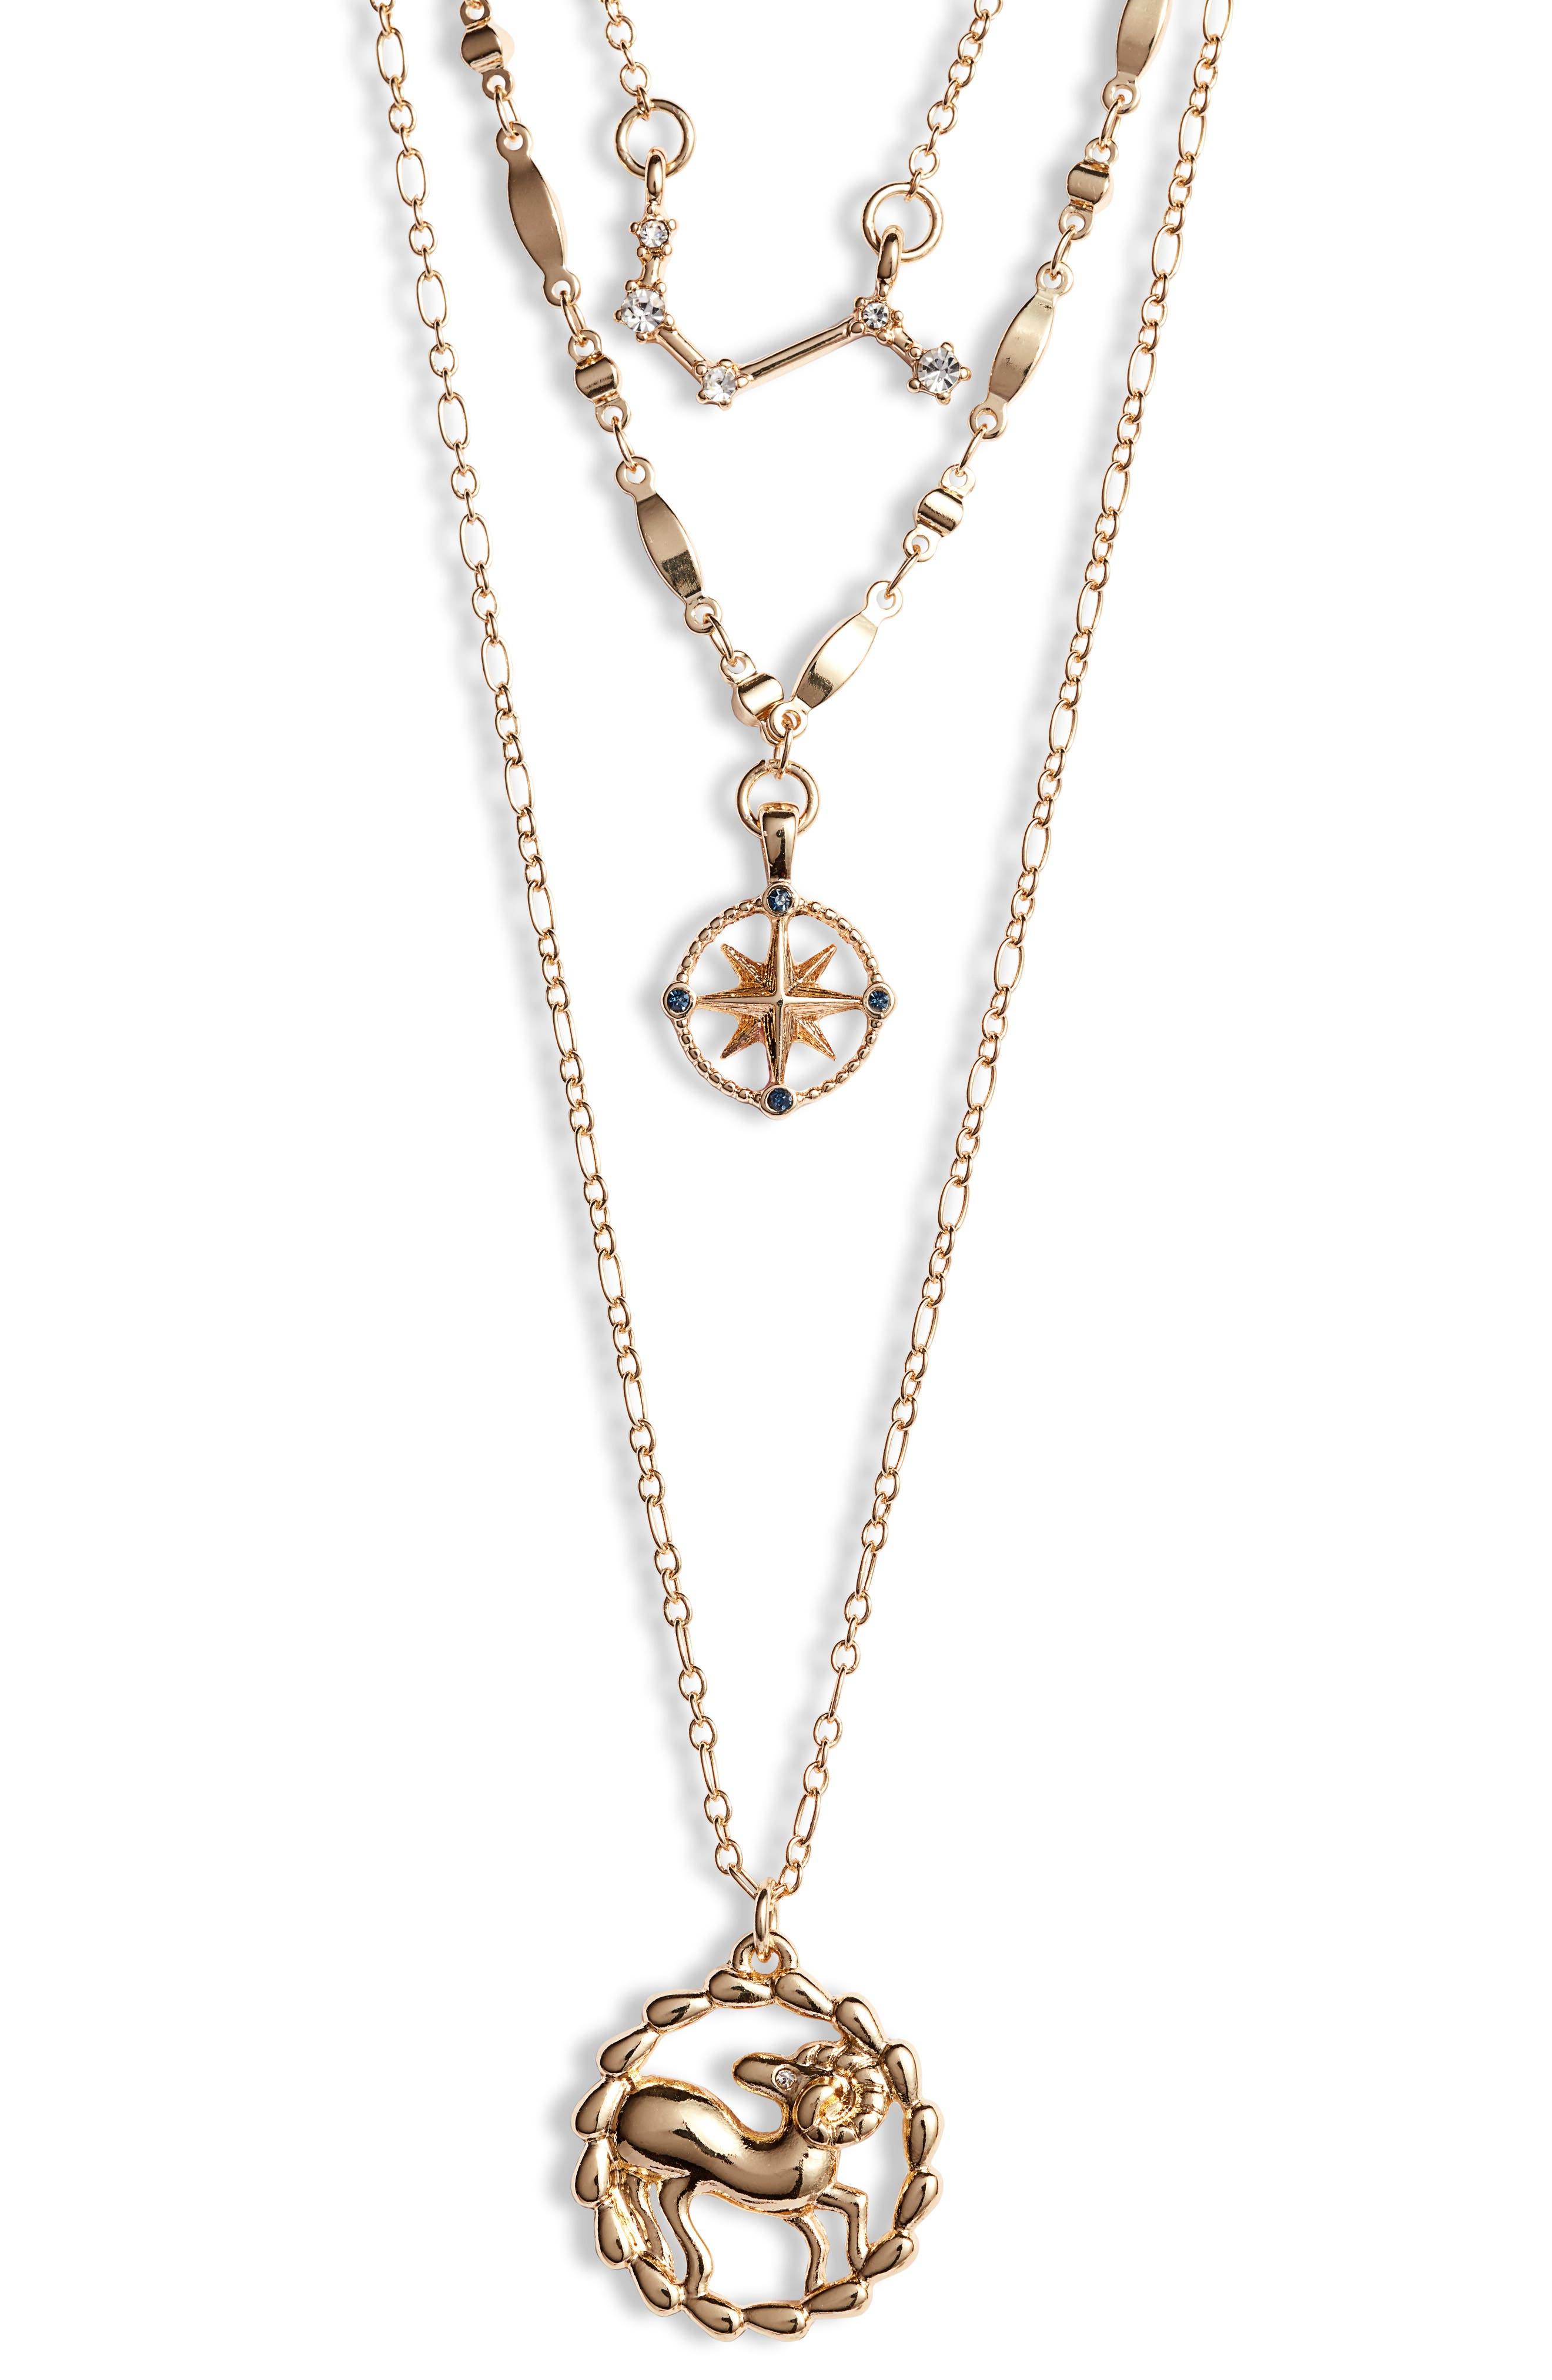 Astrological Layered Pendant Necklace